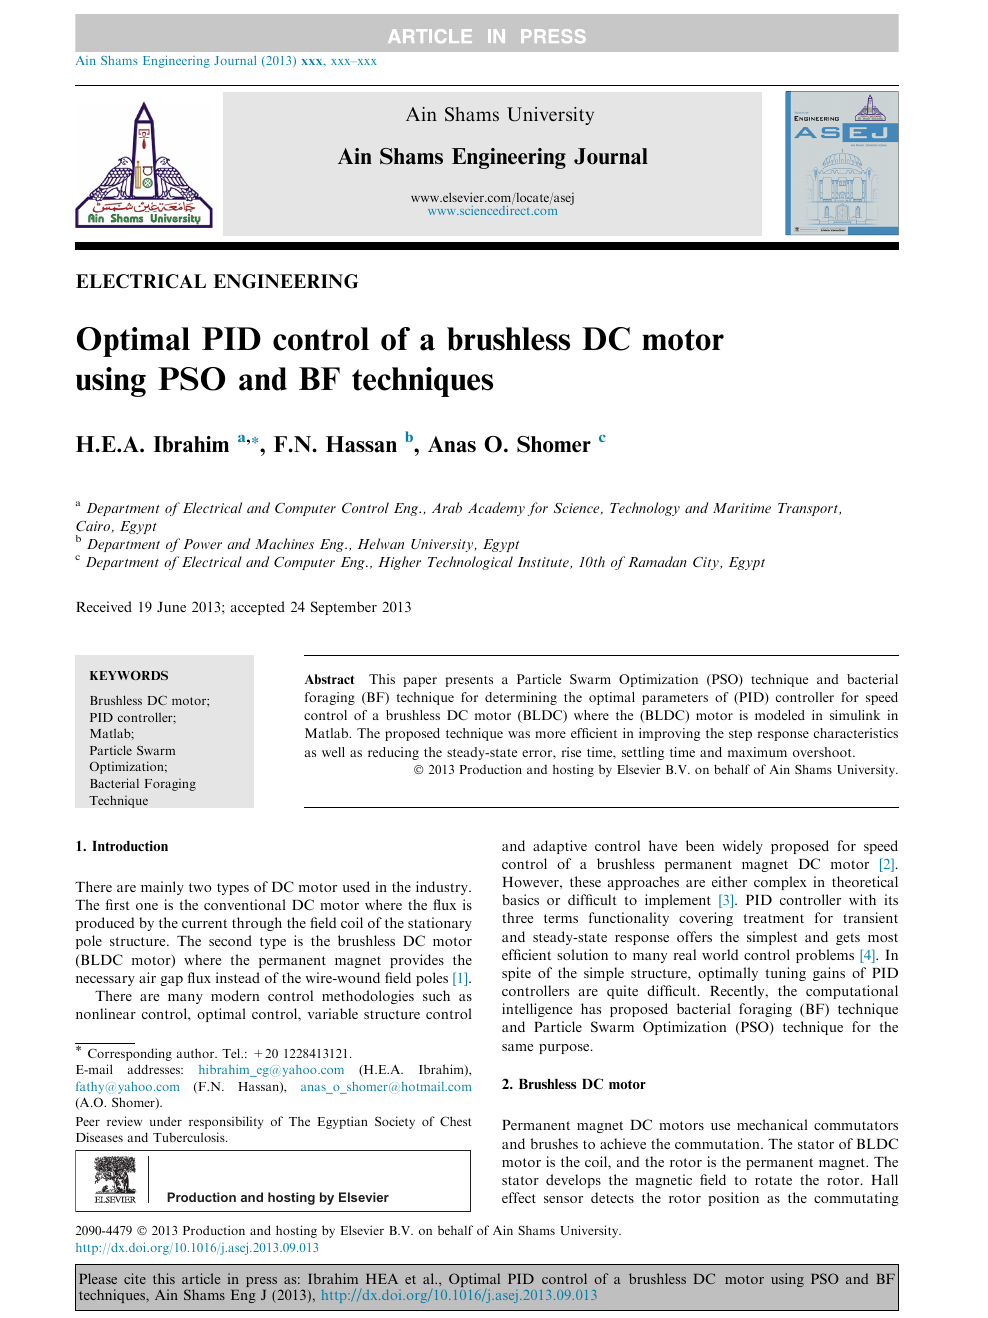 Optimal PID control of a brushless DC motor using PSO and BF